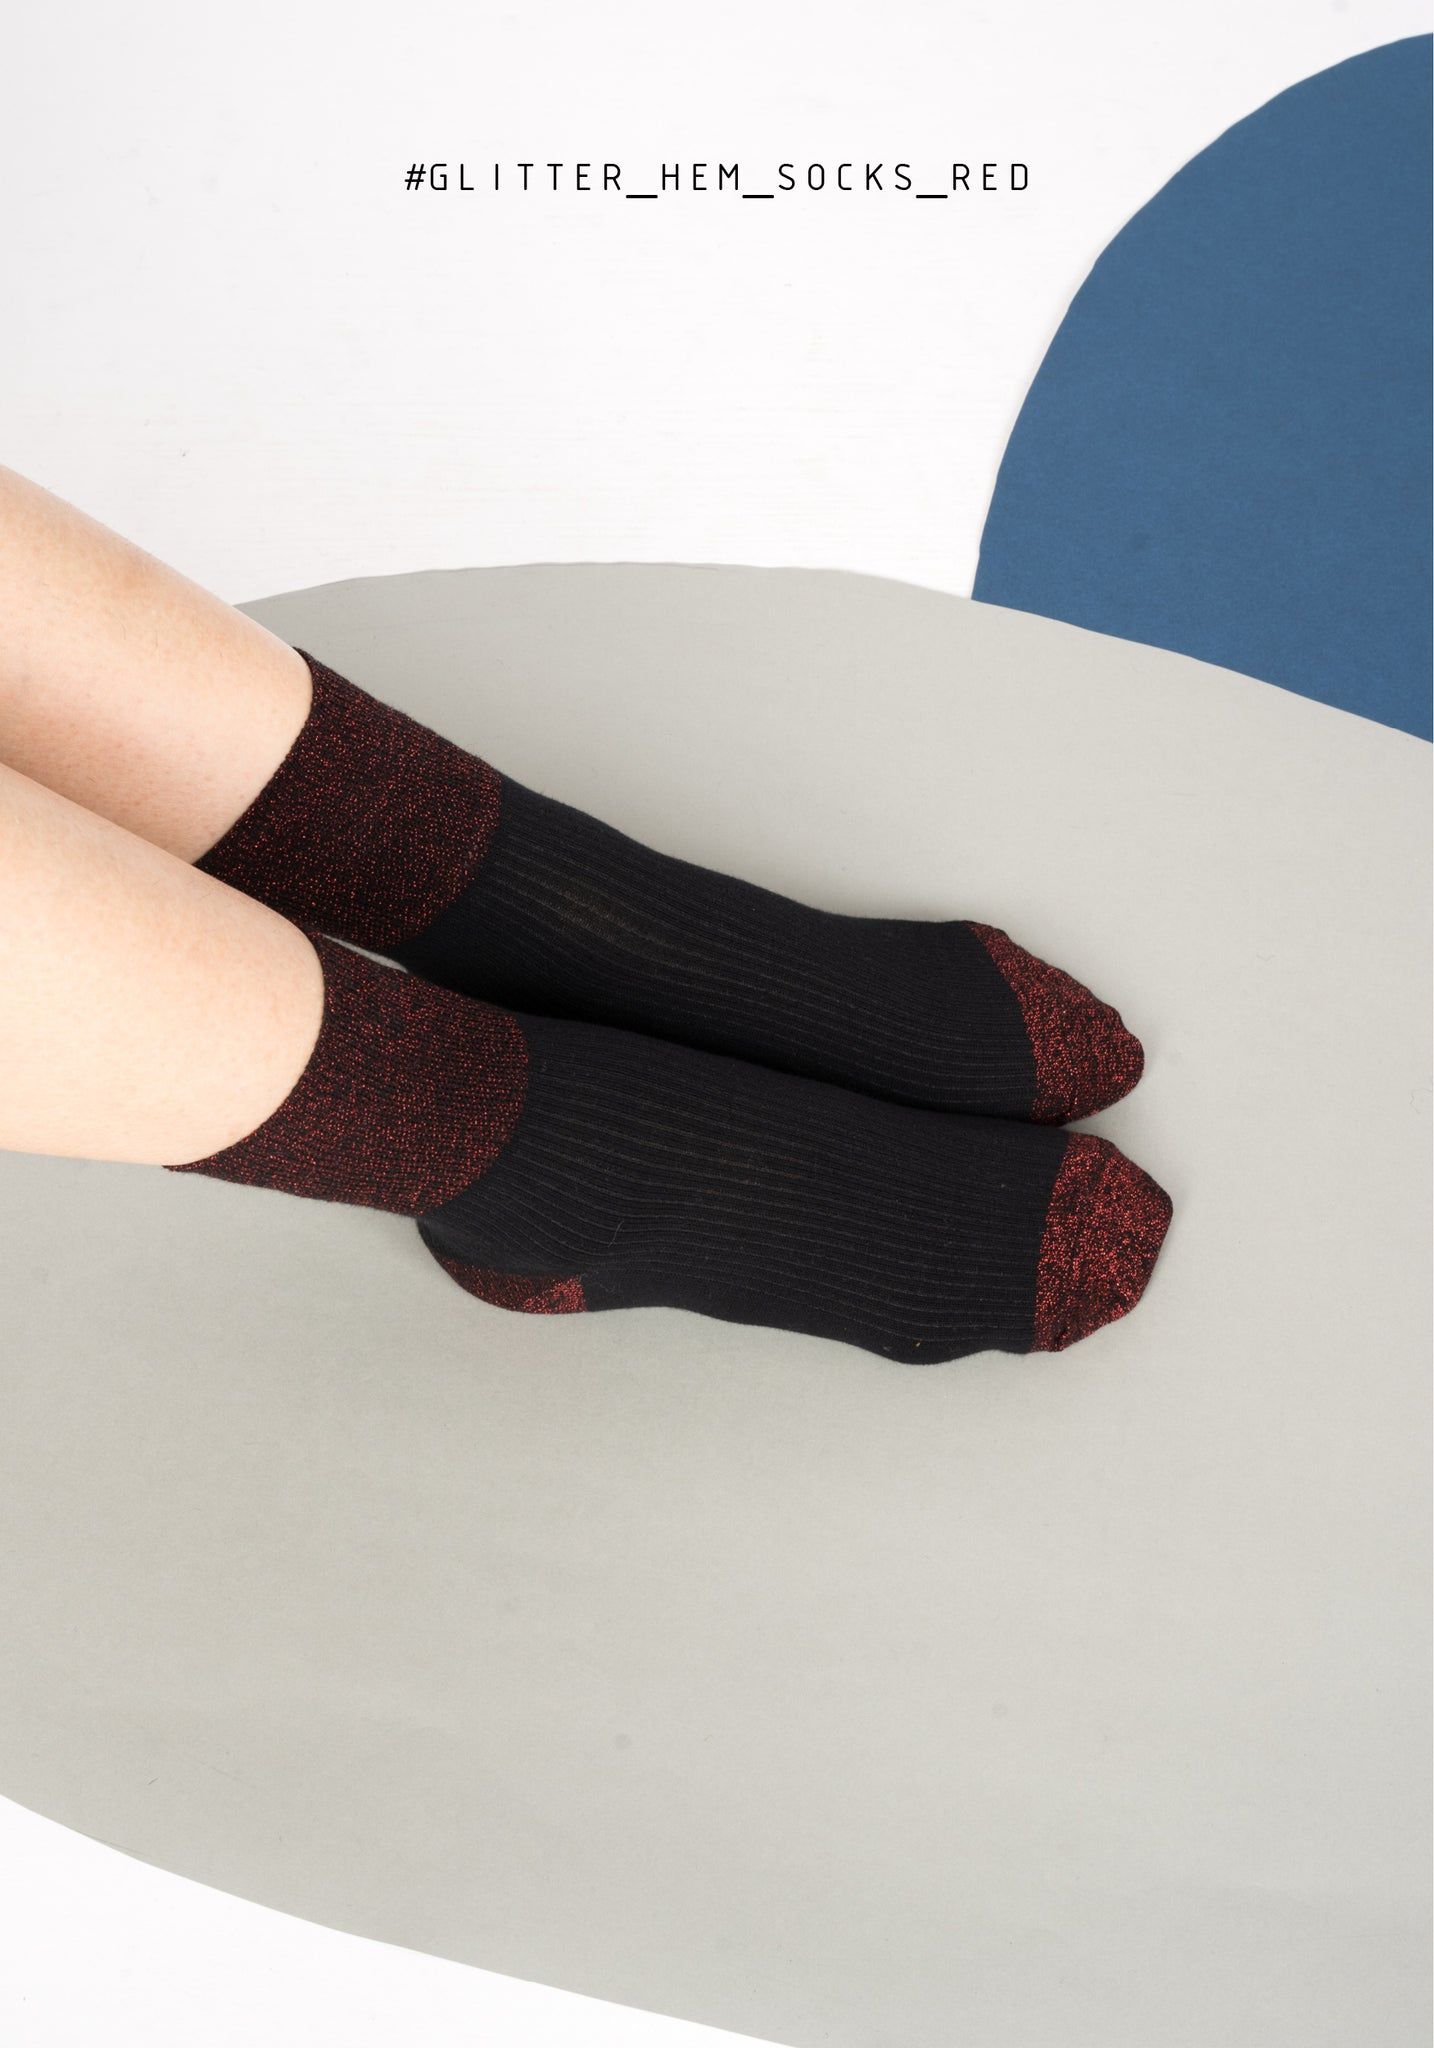 Glitter Hem Socks Red